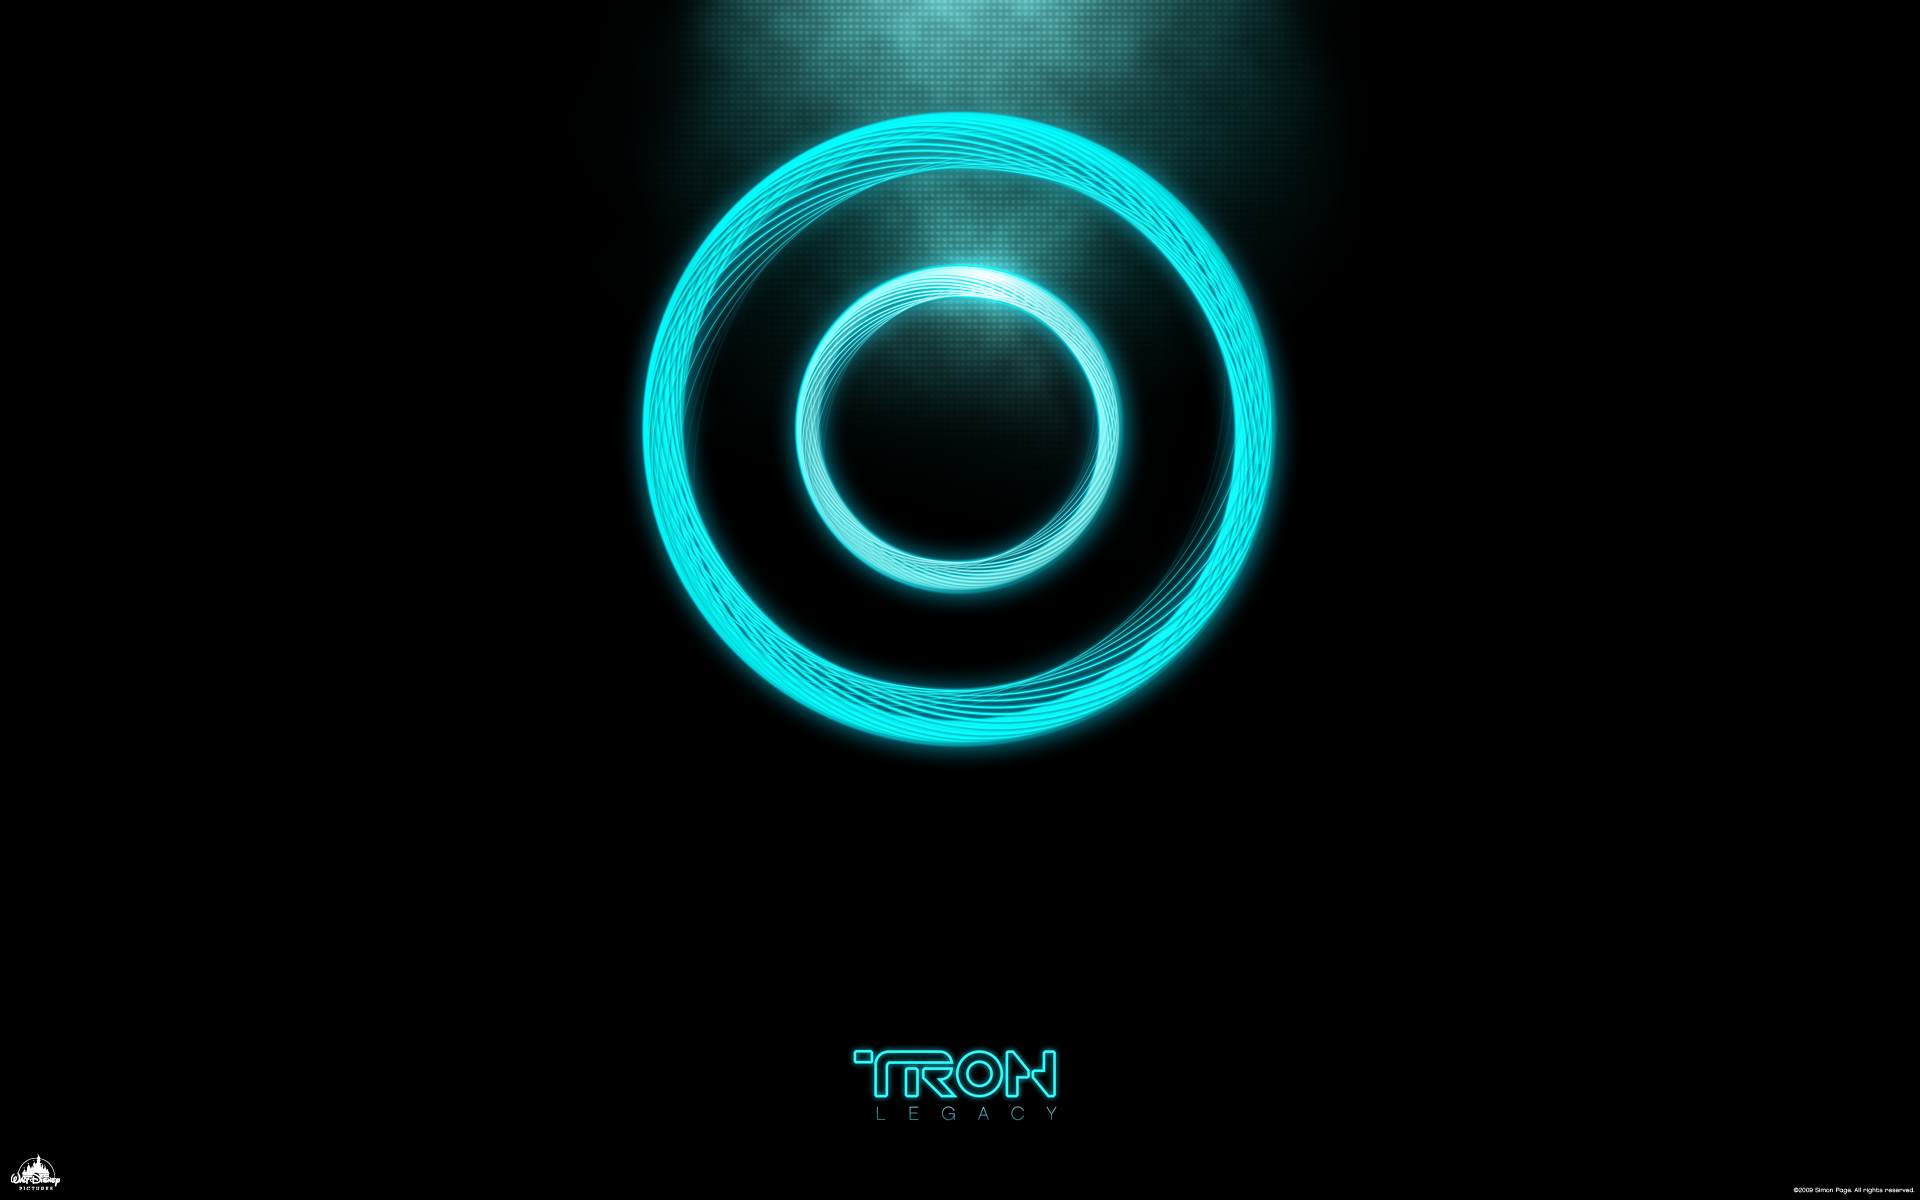 Wide HDQ Tron Wallpapers, Amazing Images | B.SCB